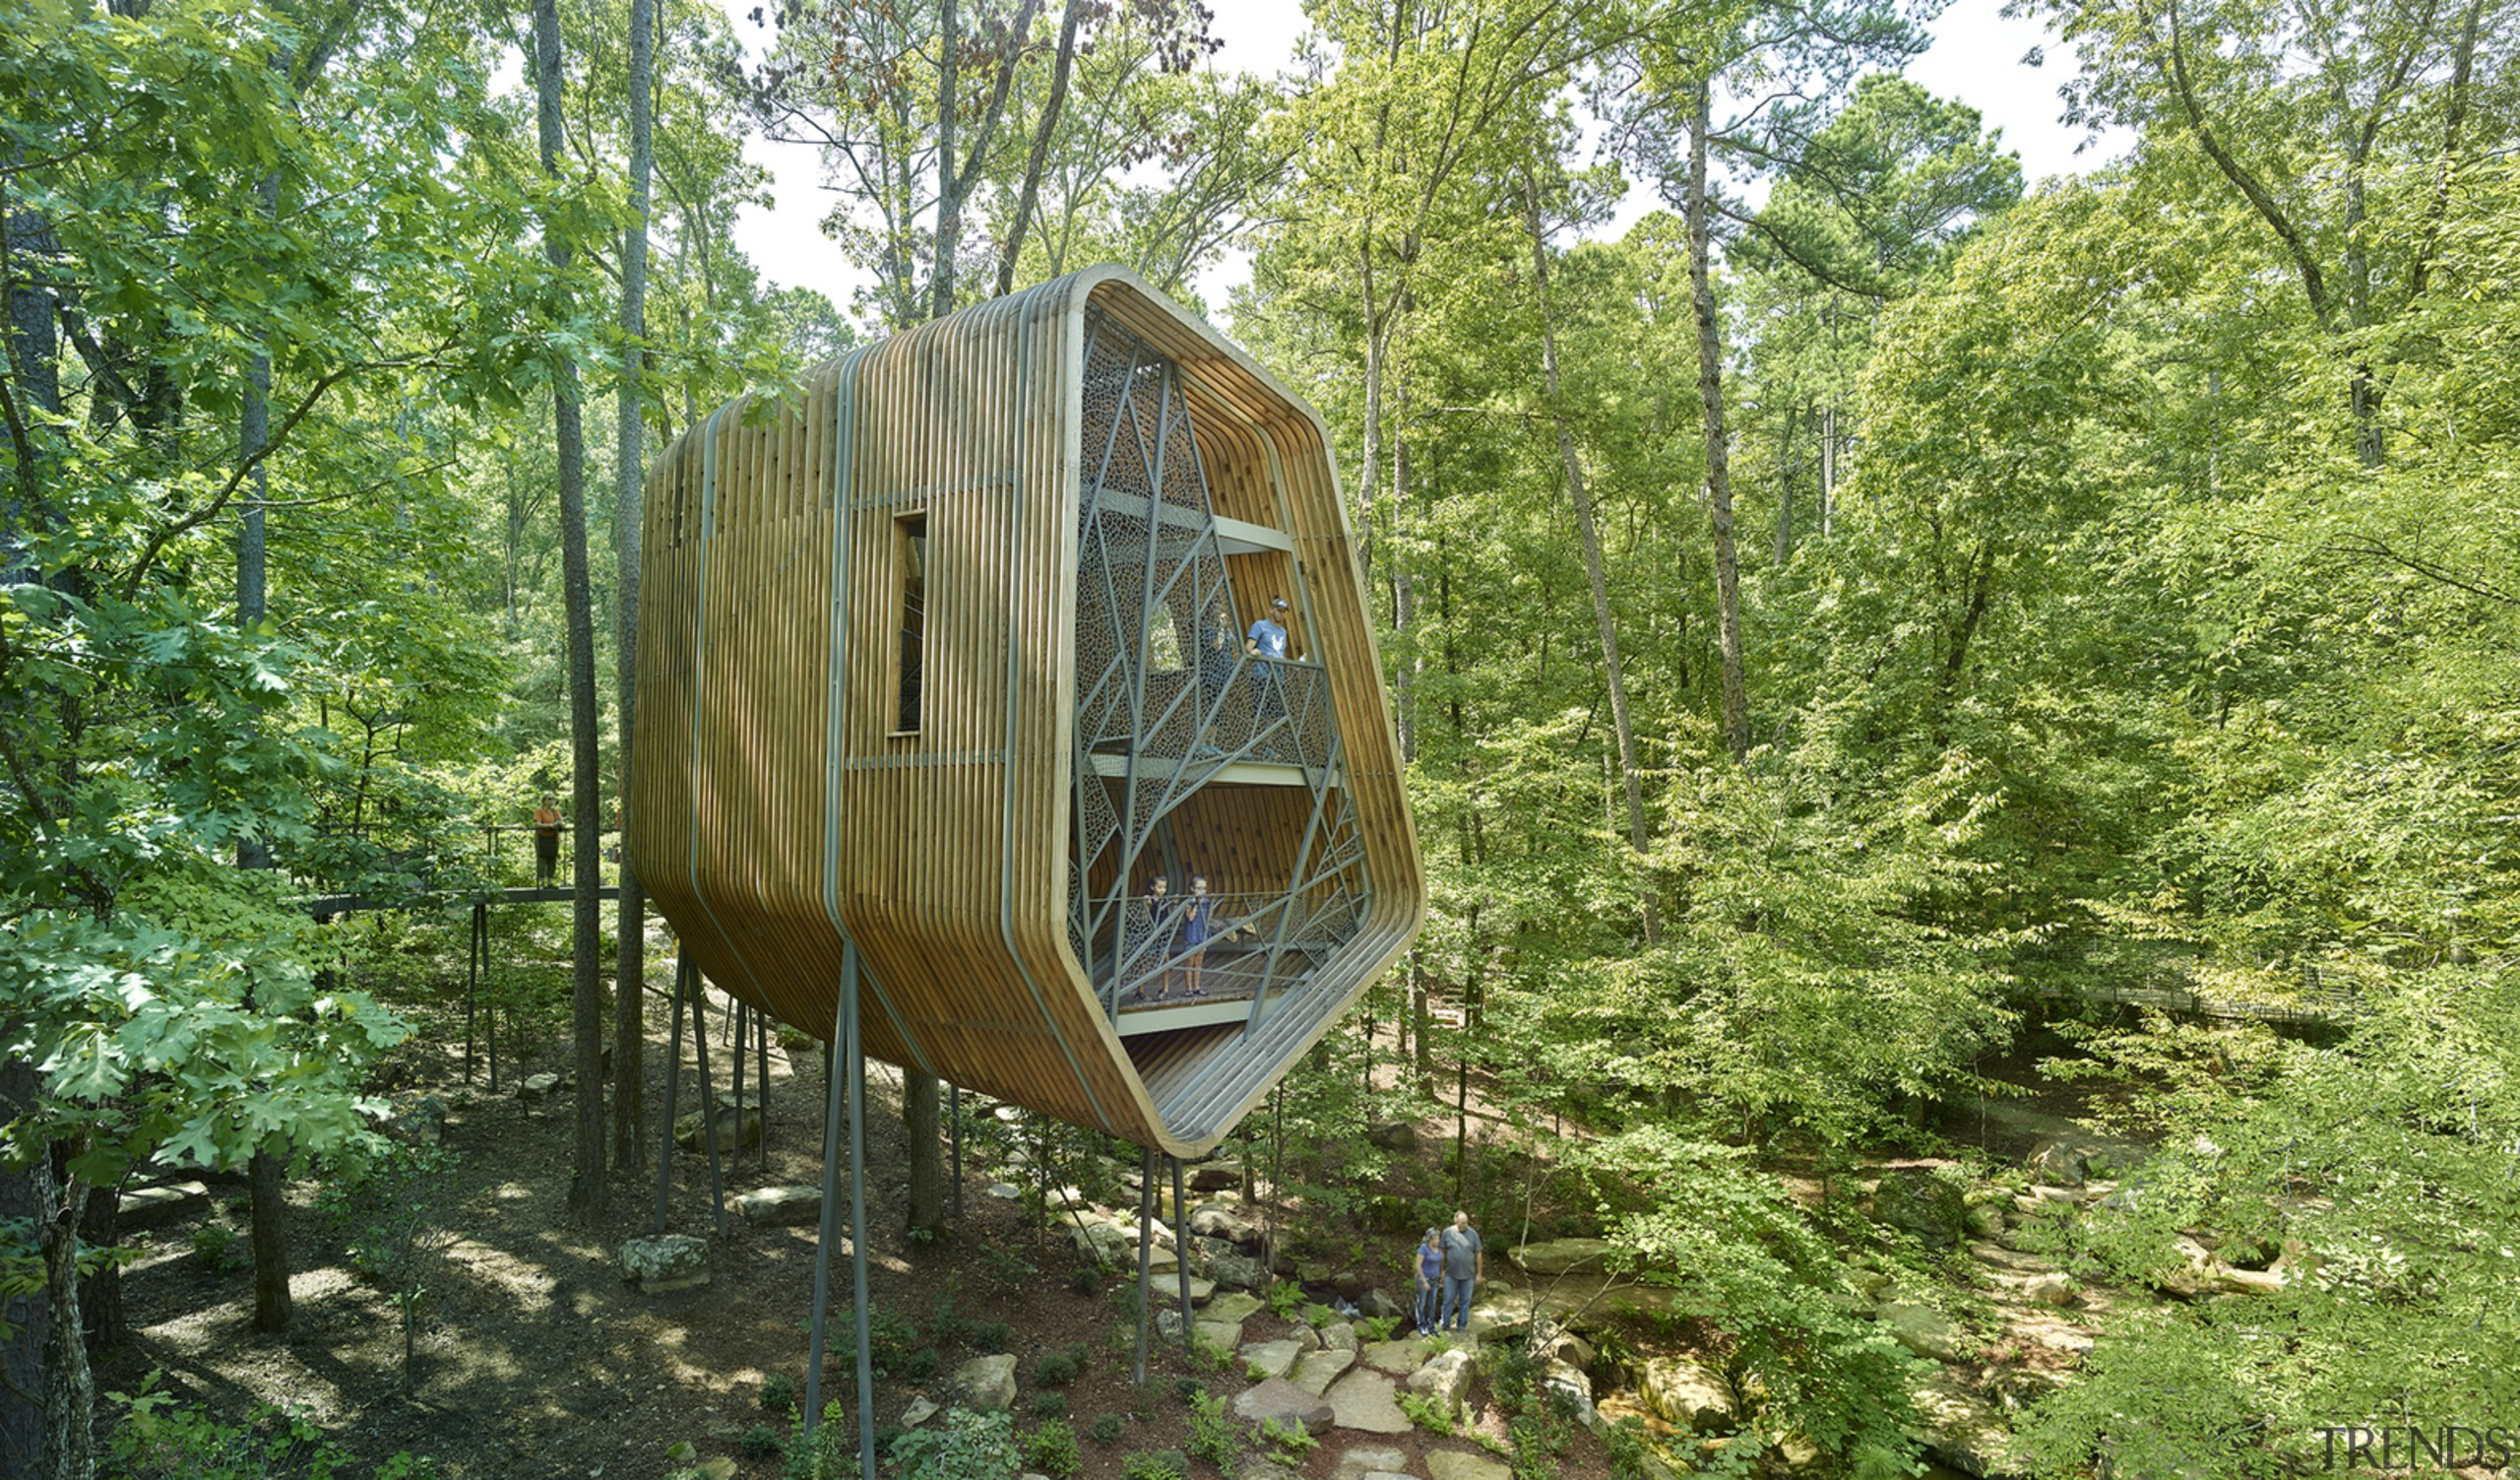 This tree house is the first of three forest, jungle, nature reserve, plant community, tree, woodland, green, brown